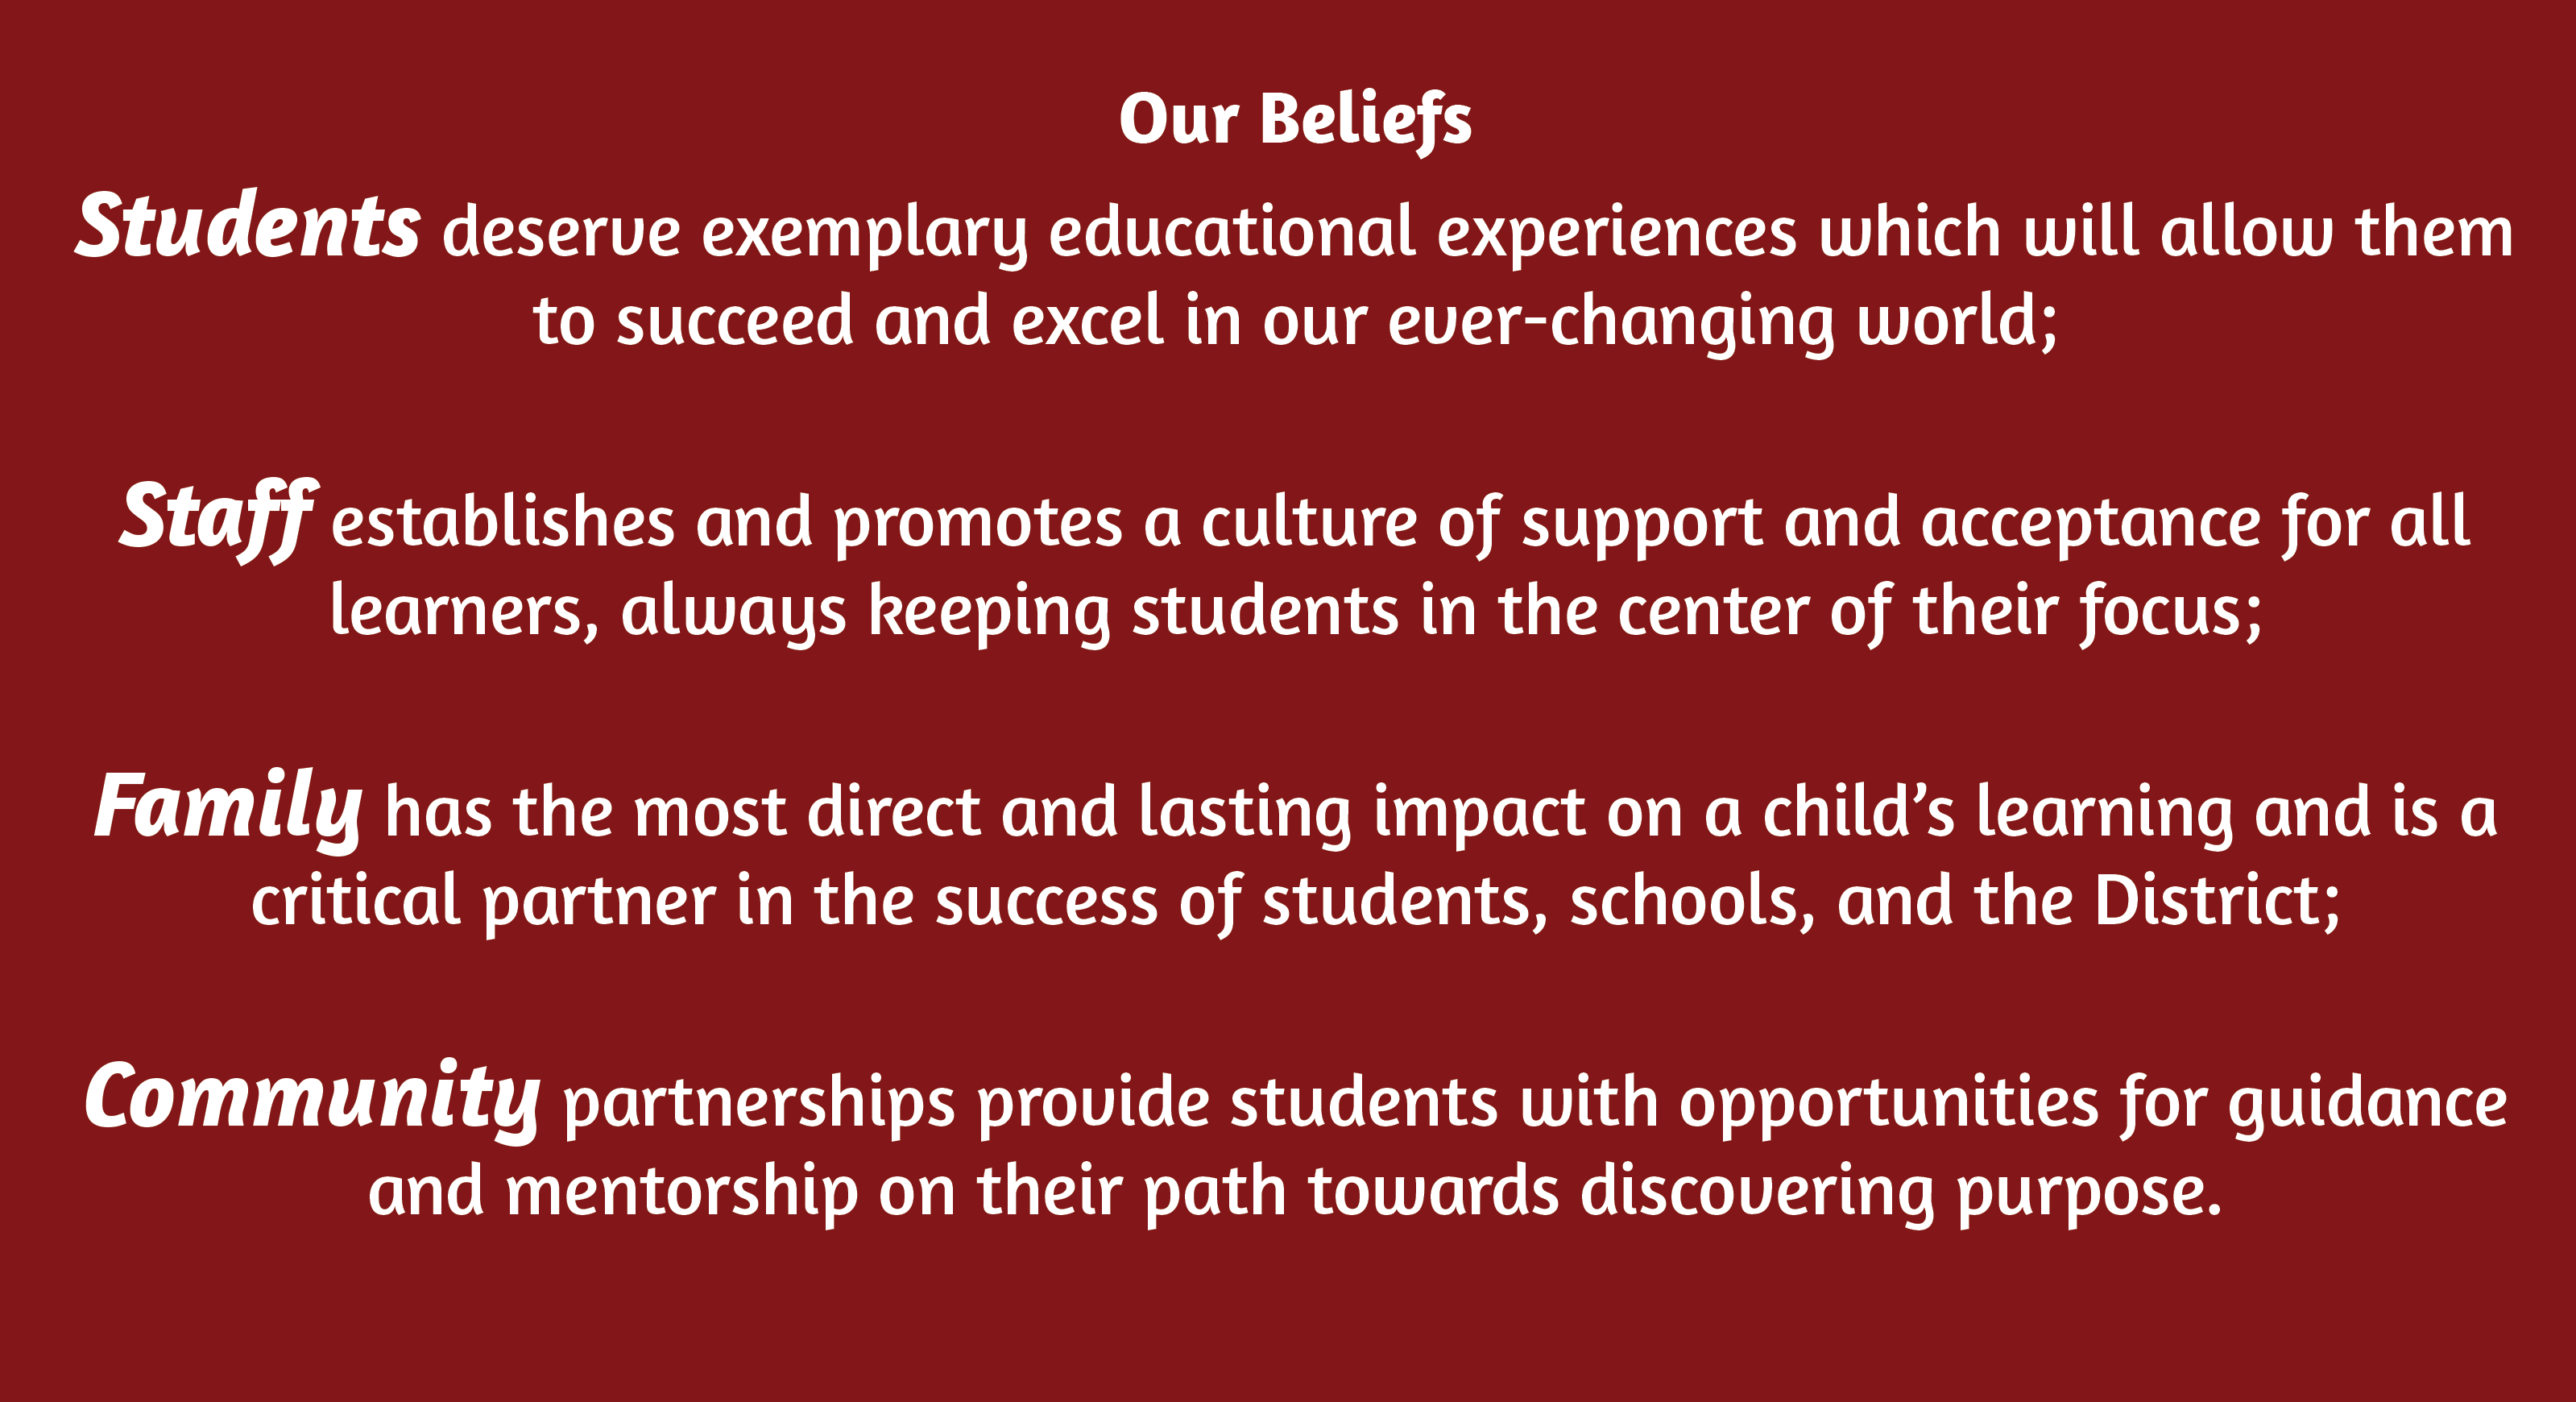 "Our Beliefs which Reads ""Students deserve exemplary educational experiences which will allow them to succeed and excel in our ever-changing world;  Staff establishes and promotes a culture of support and acceptance for all learners, always keeping students in the center of their focus;  Family has the most direct and lasting impact on a child's learning and is a critical partner in the success of students, schools, and the District;   Community partnerships provide students with opportunities for guidance and mentorship on their path towards discovering purpose."""